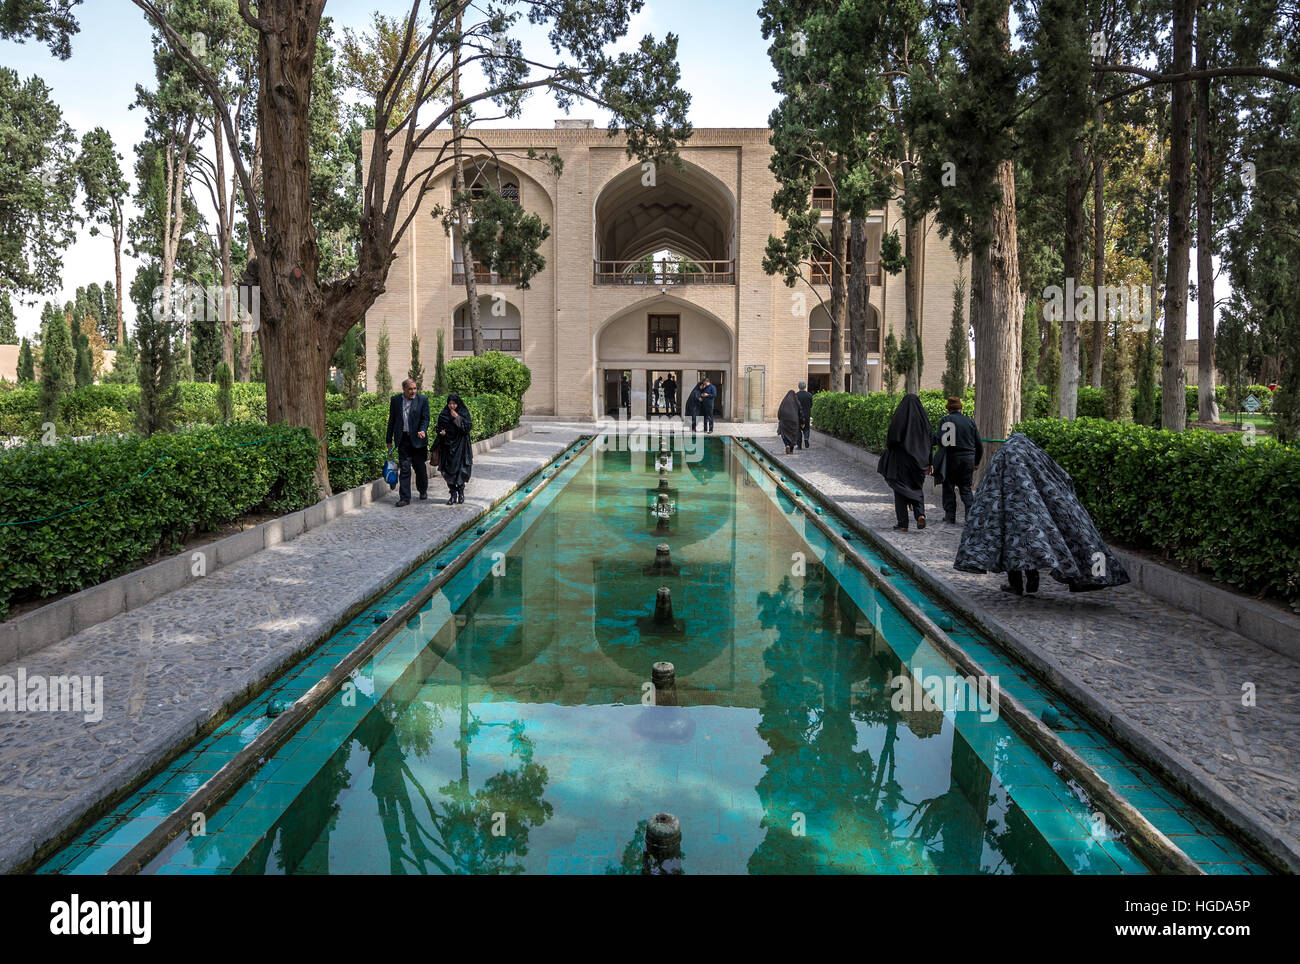 Pool In Oldest Extant Persian Garden In Iran Called Fin Garden (Bagh E  Fin), Located In Kashan City